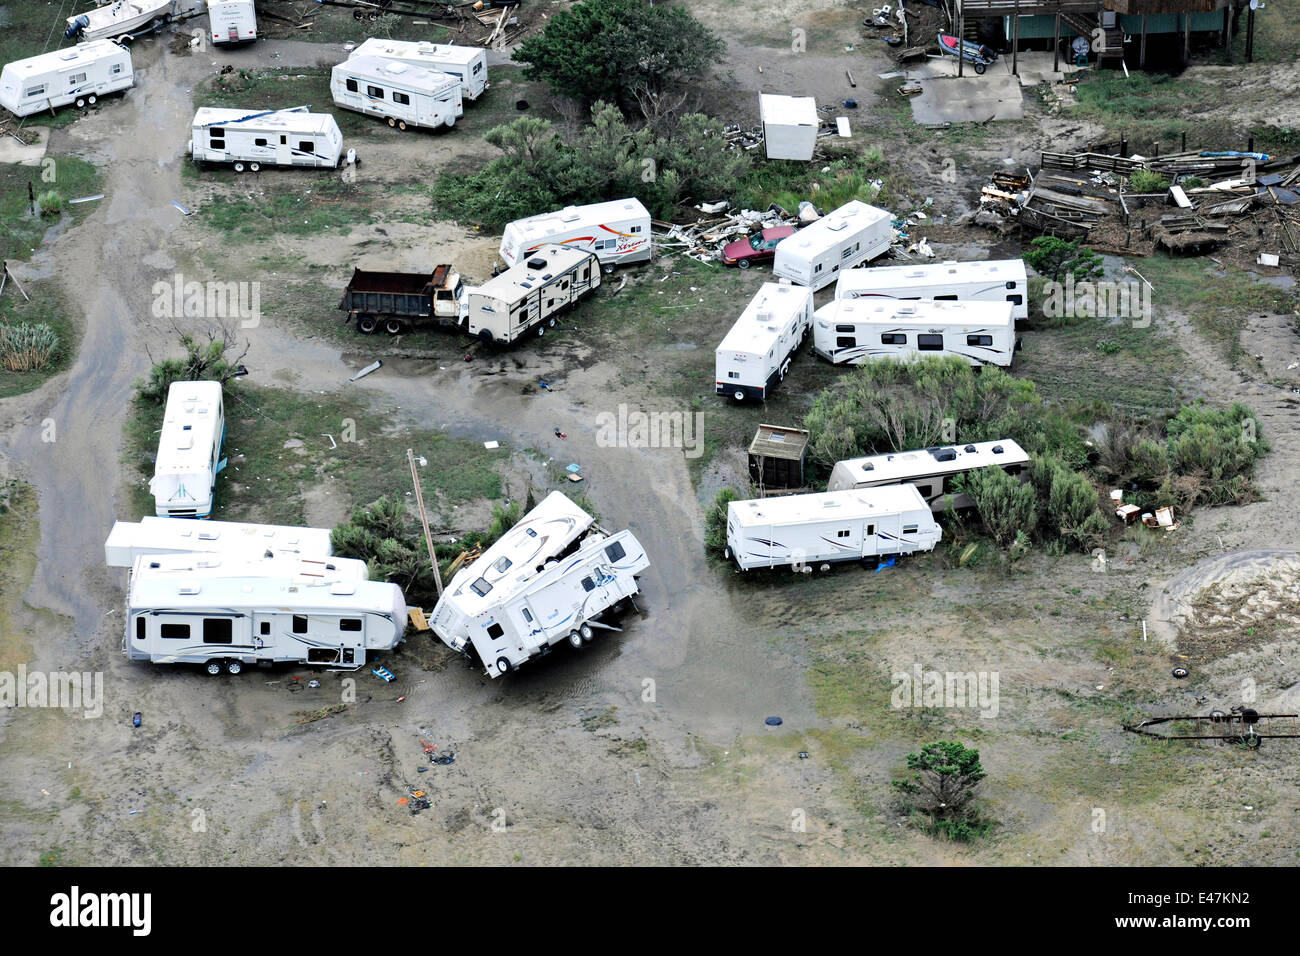 Aerial view of trailer homes thrown around by Hurricane Arthur on the Outer Banks July 4, 2014 in Nags Head, North - Stock Image